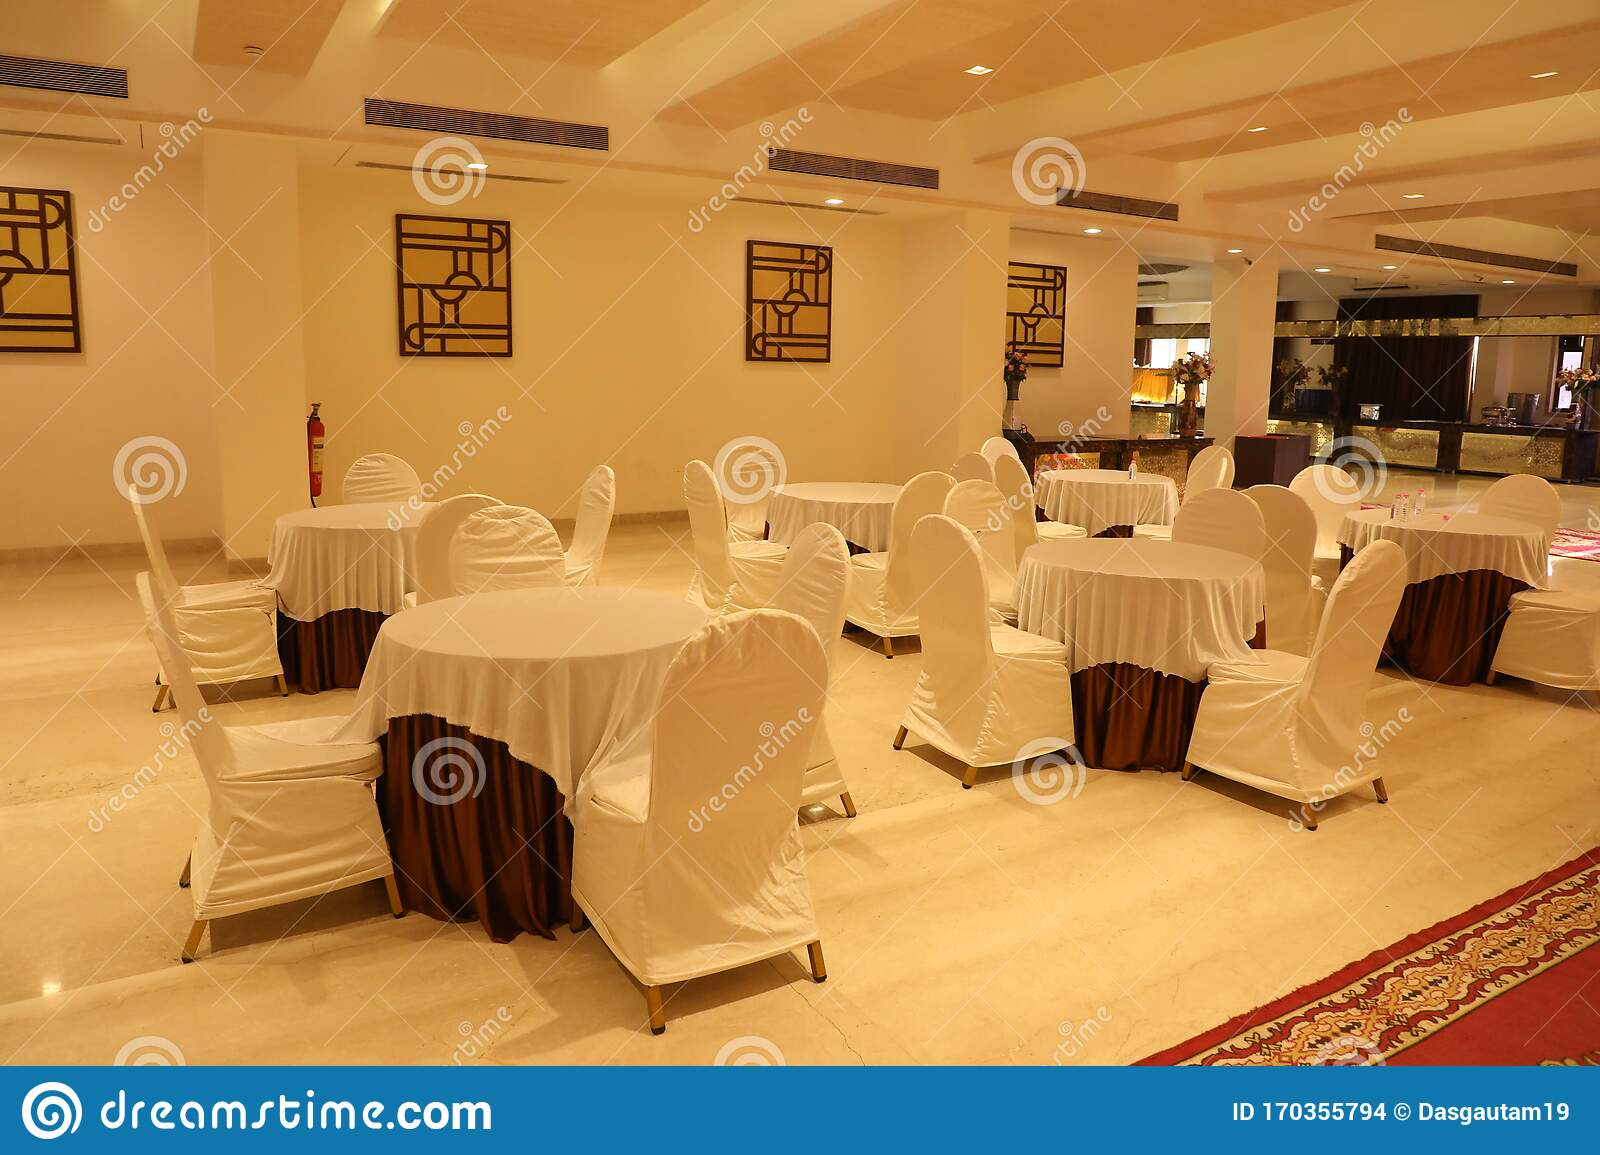 Seating Arrangement In Dining Area In Banquette Stock Photo Image Of Area Seating 170355794